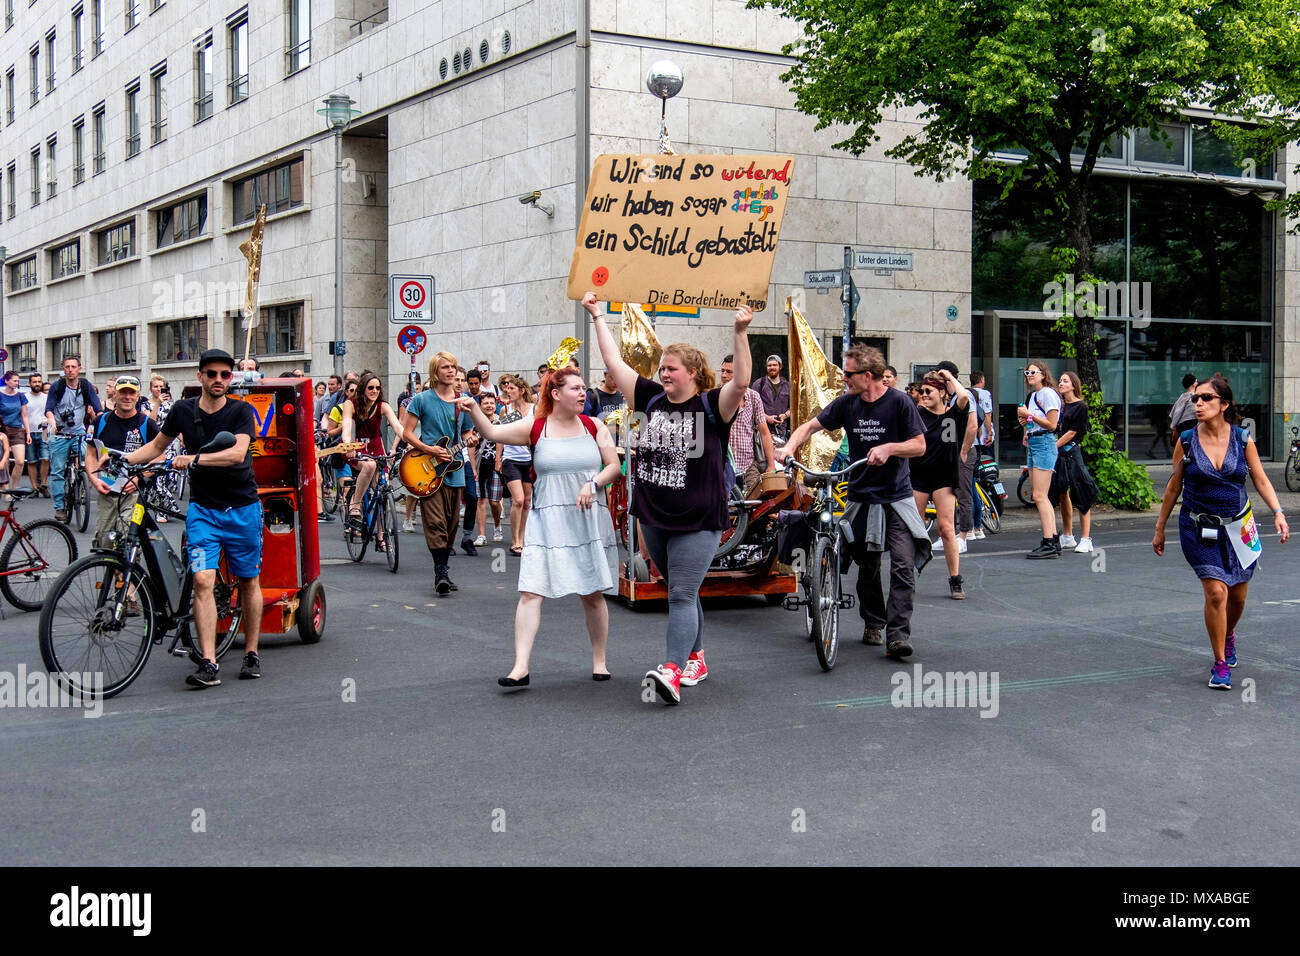 Germany,Berlin-Mitte, 27th May 2018. Anti AfD protesters march to Barndenburg Gate in day of Protests and counter protests.                            - Stock Image